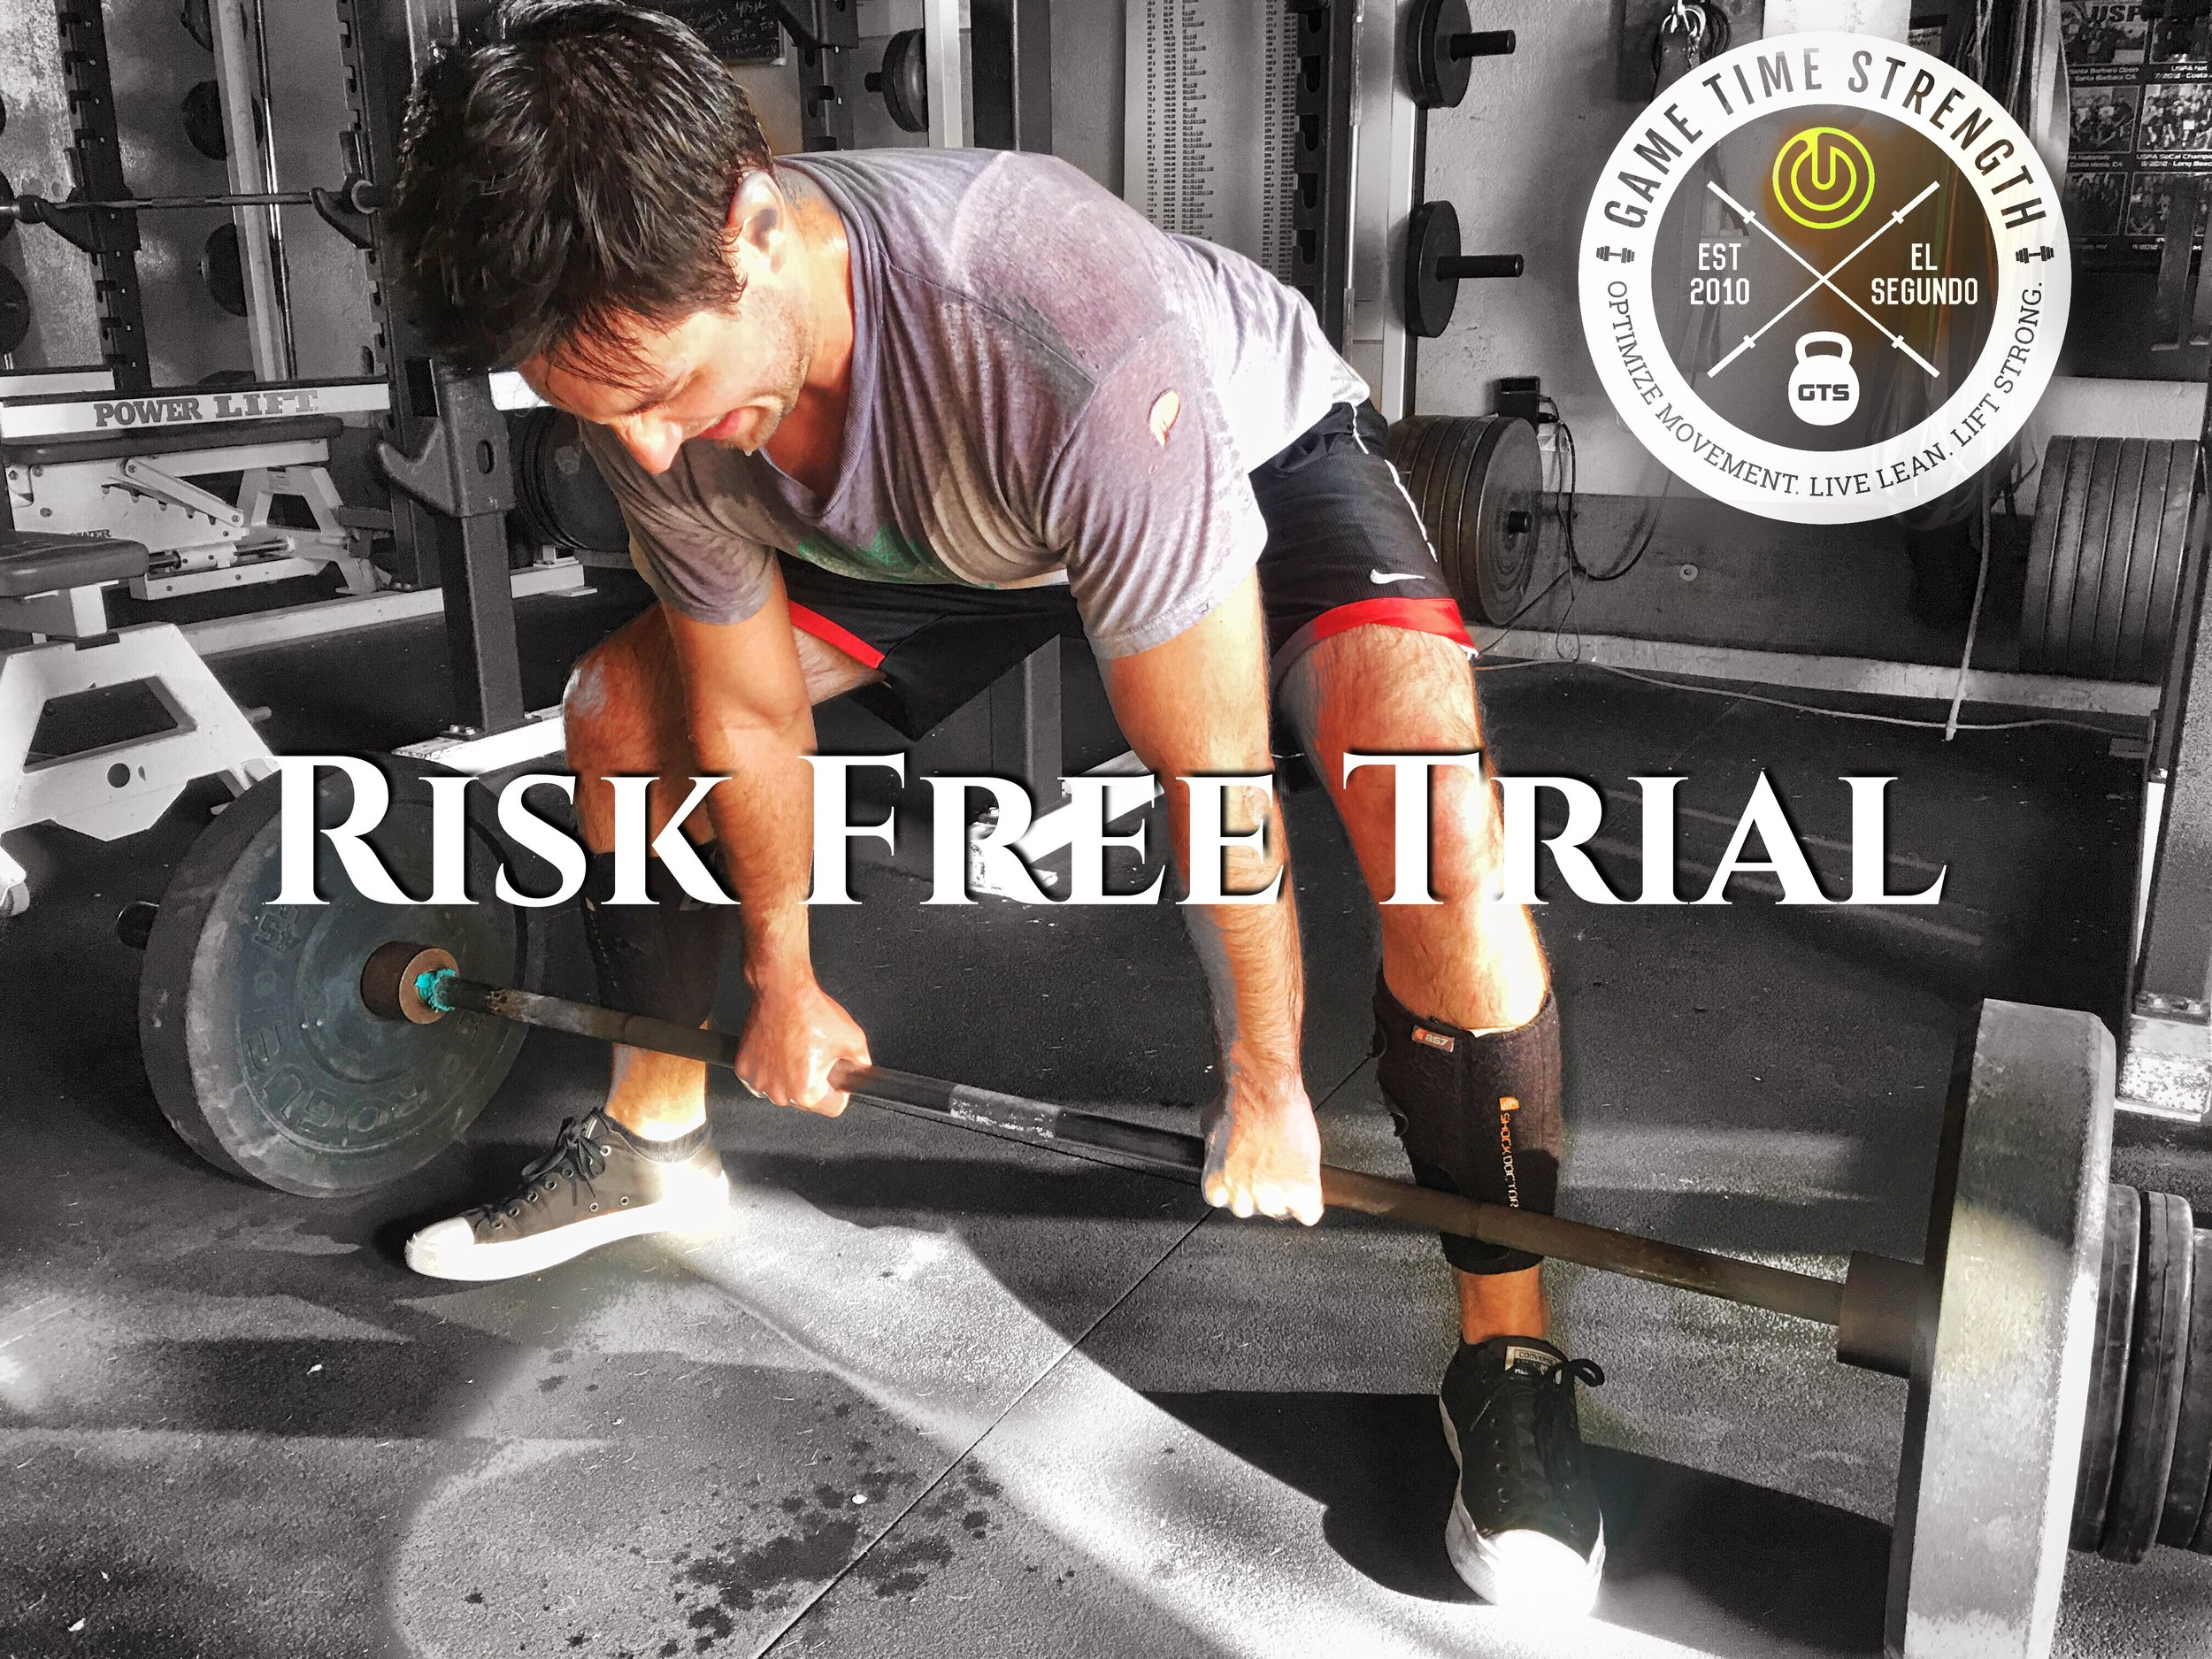 Risk Free Trial Offer GTS Game Time Strength Zero Commitment El Segundo Los Angeles Best personal private group team strength barbell training gym.JPG